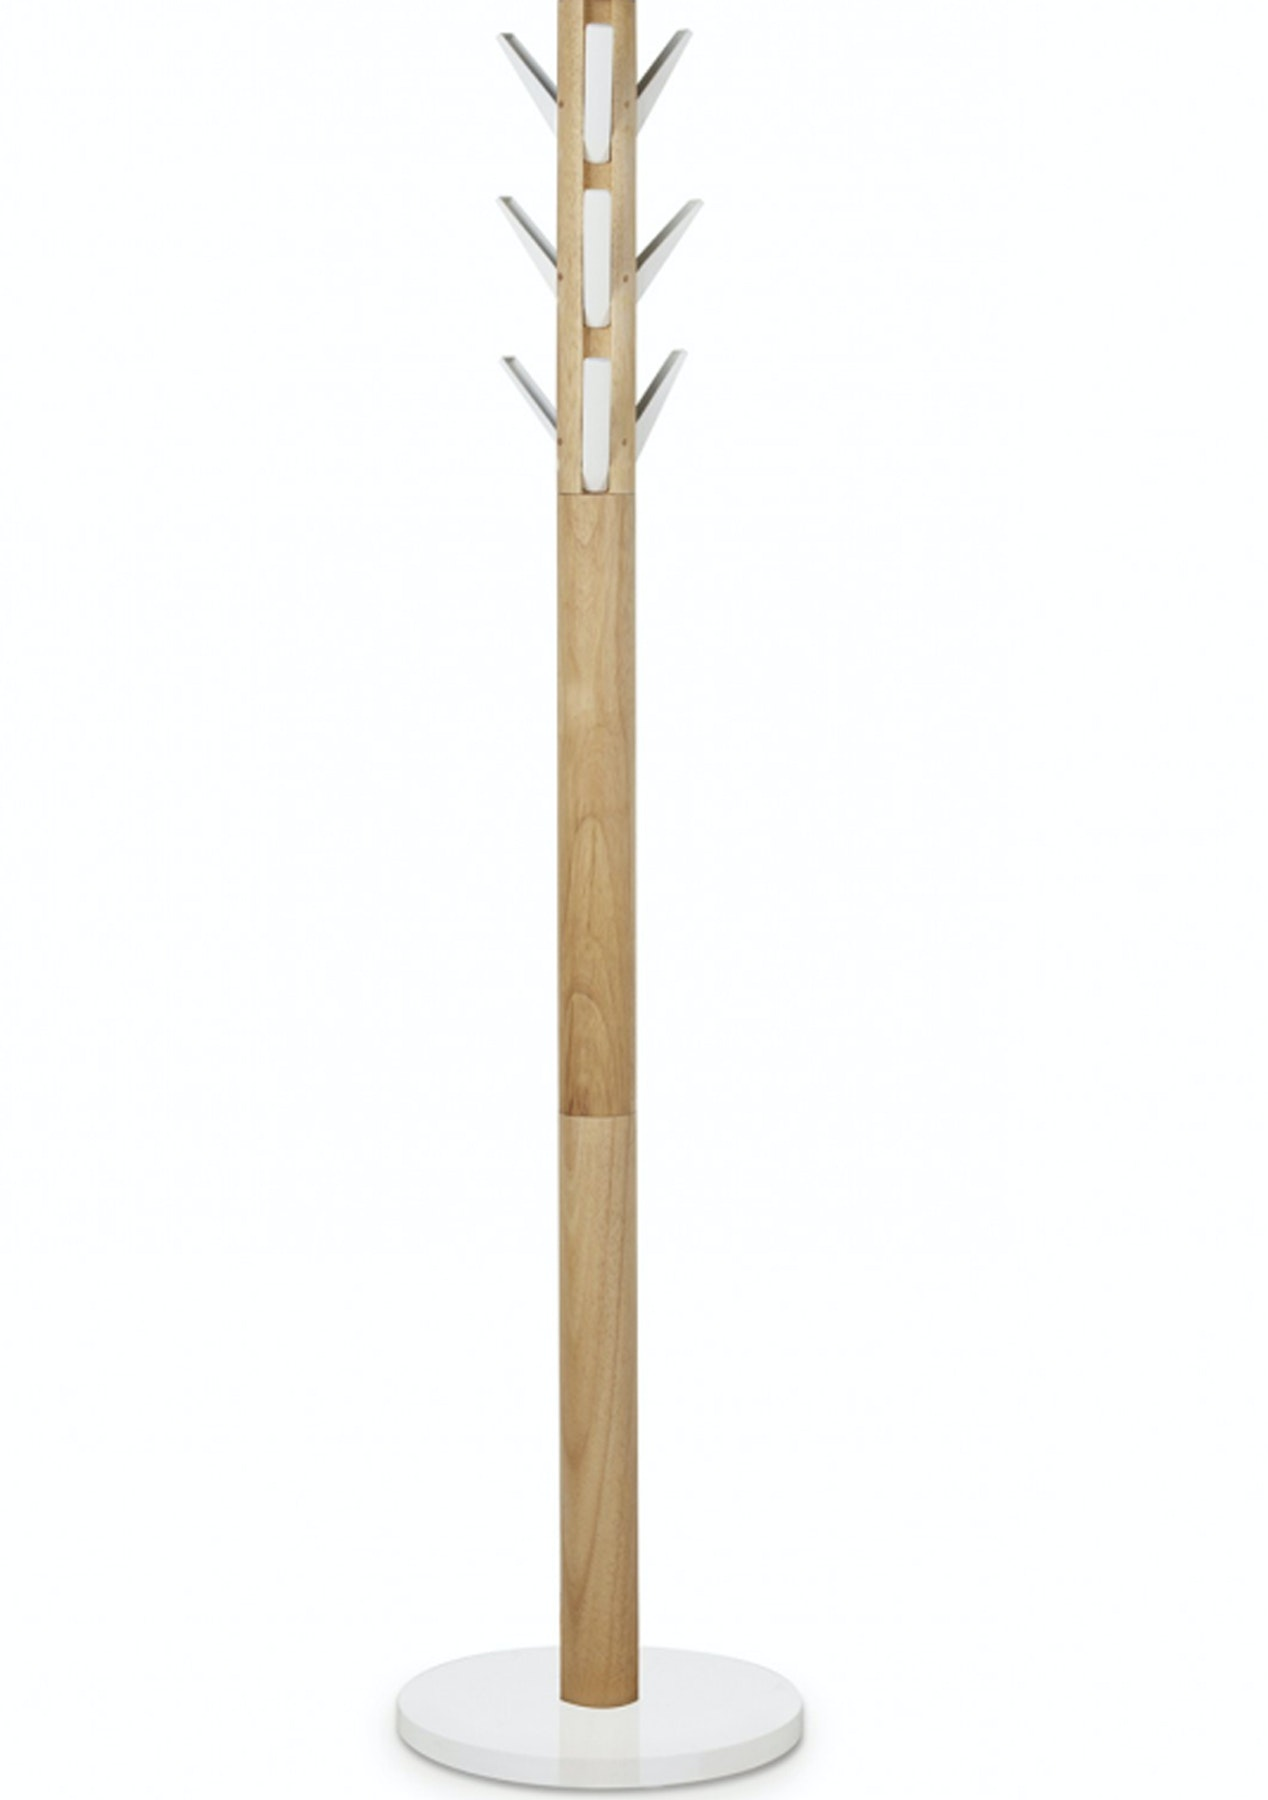 Umbra Flapper Coat Rack White Natural Umbra Home